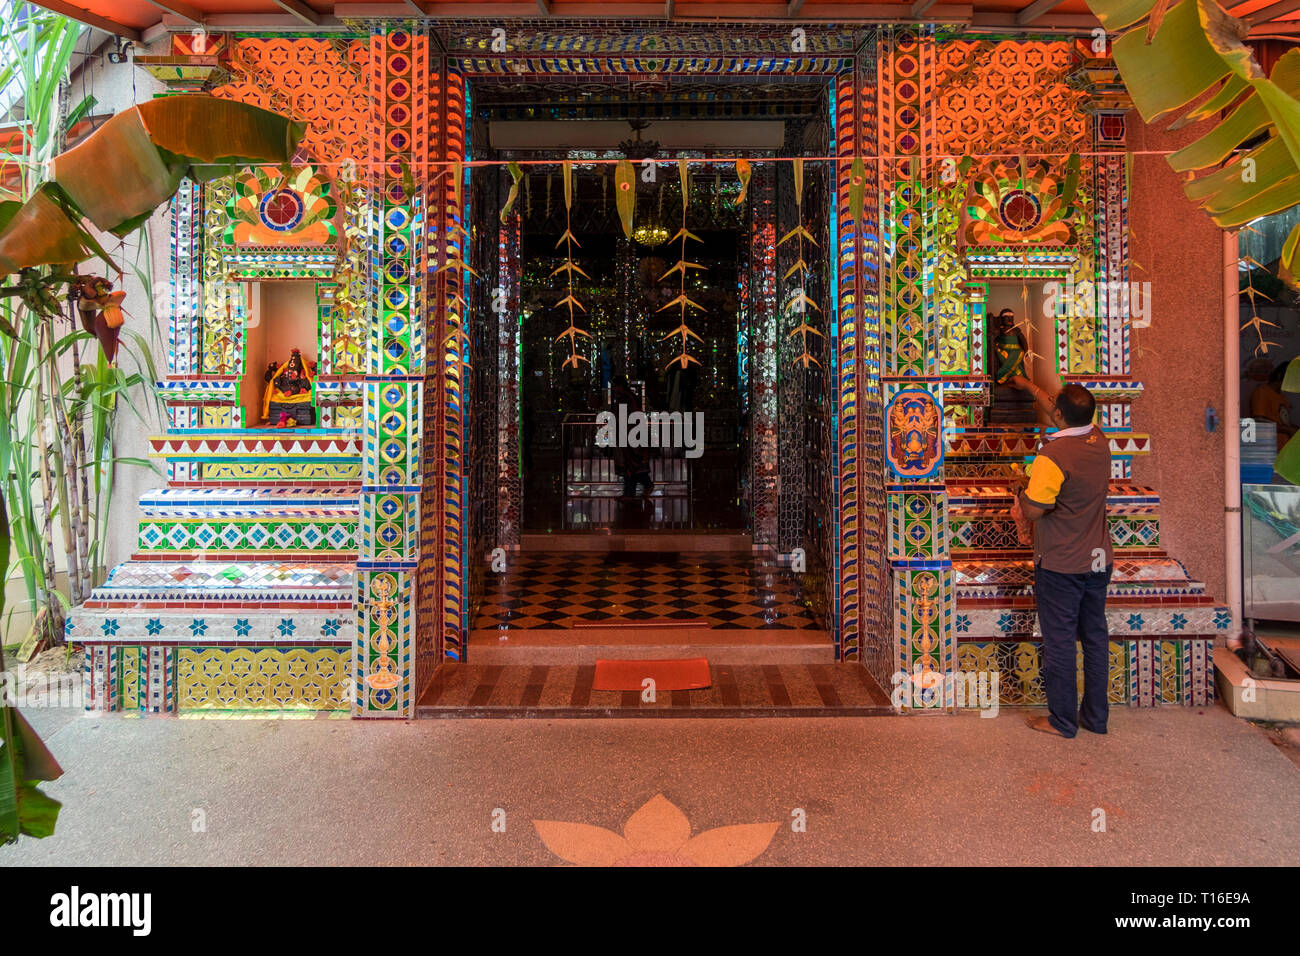 The unique Arulmigu Sri Rajakaliamman Glass Temple in Johor Bahru, Malaysia. The interior is completely covered in glass tiles. Front entrance. - Stock Image